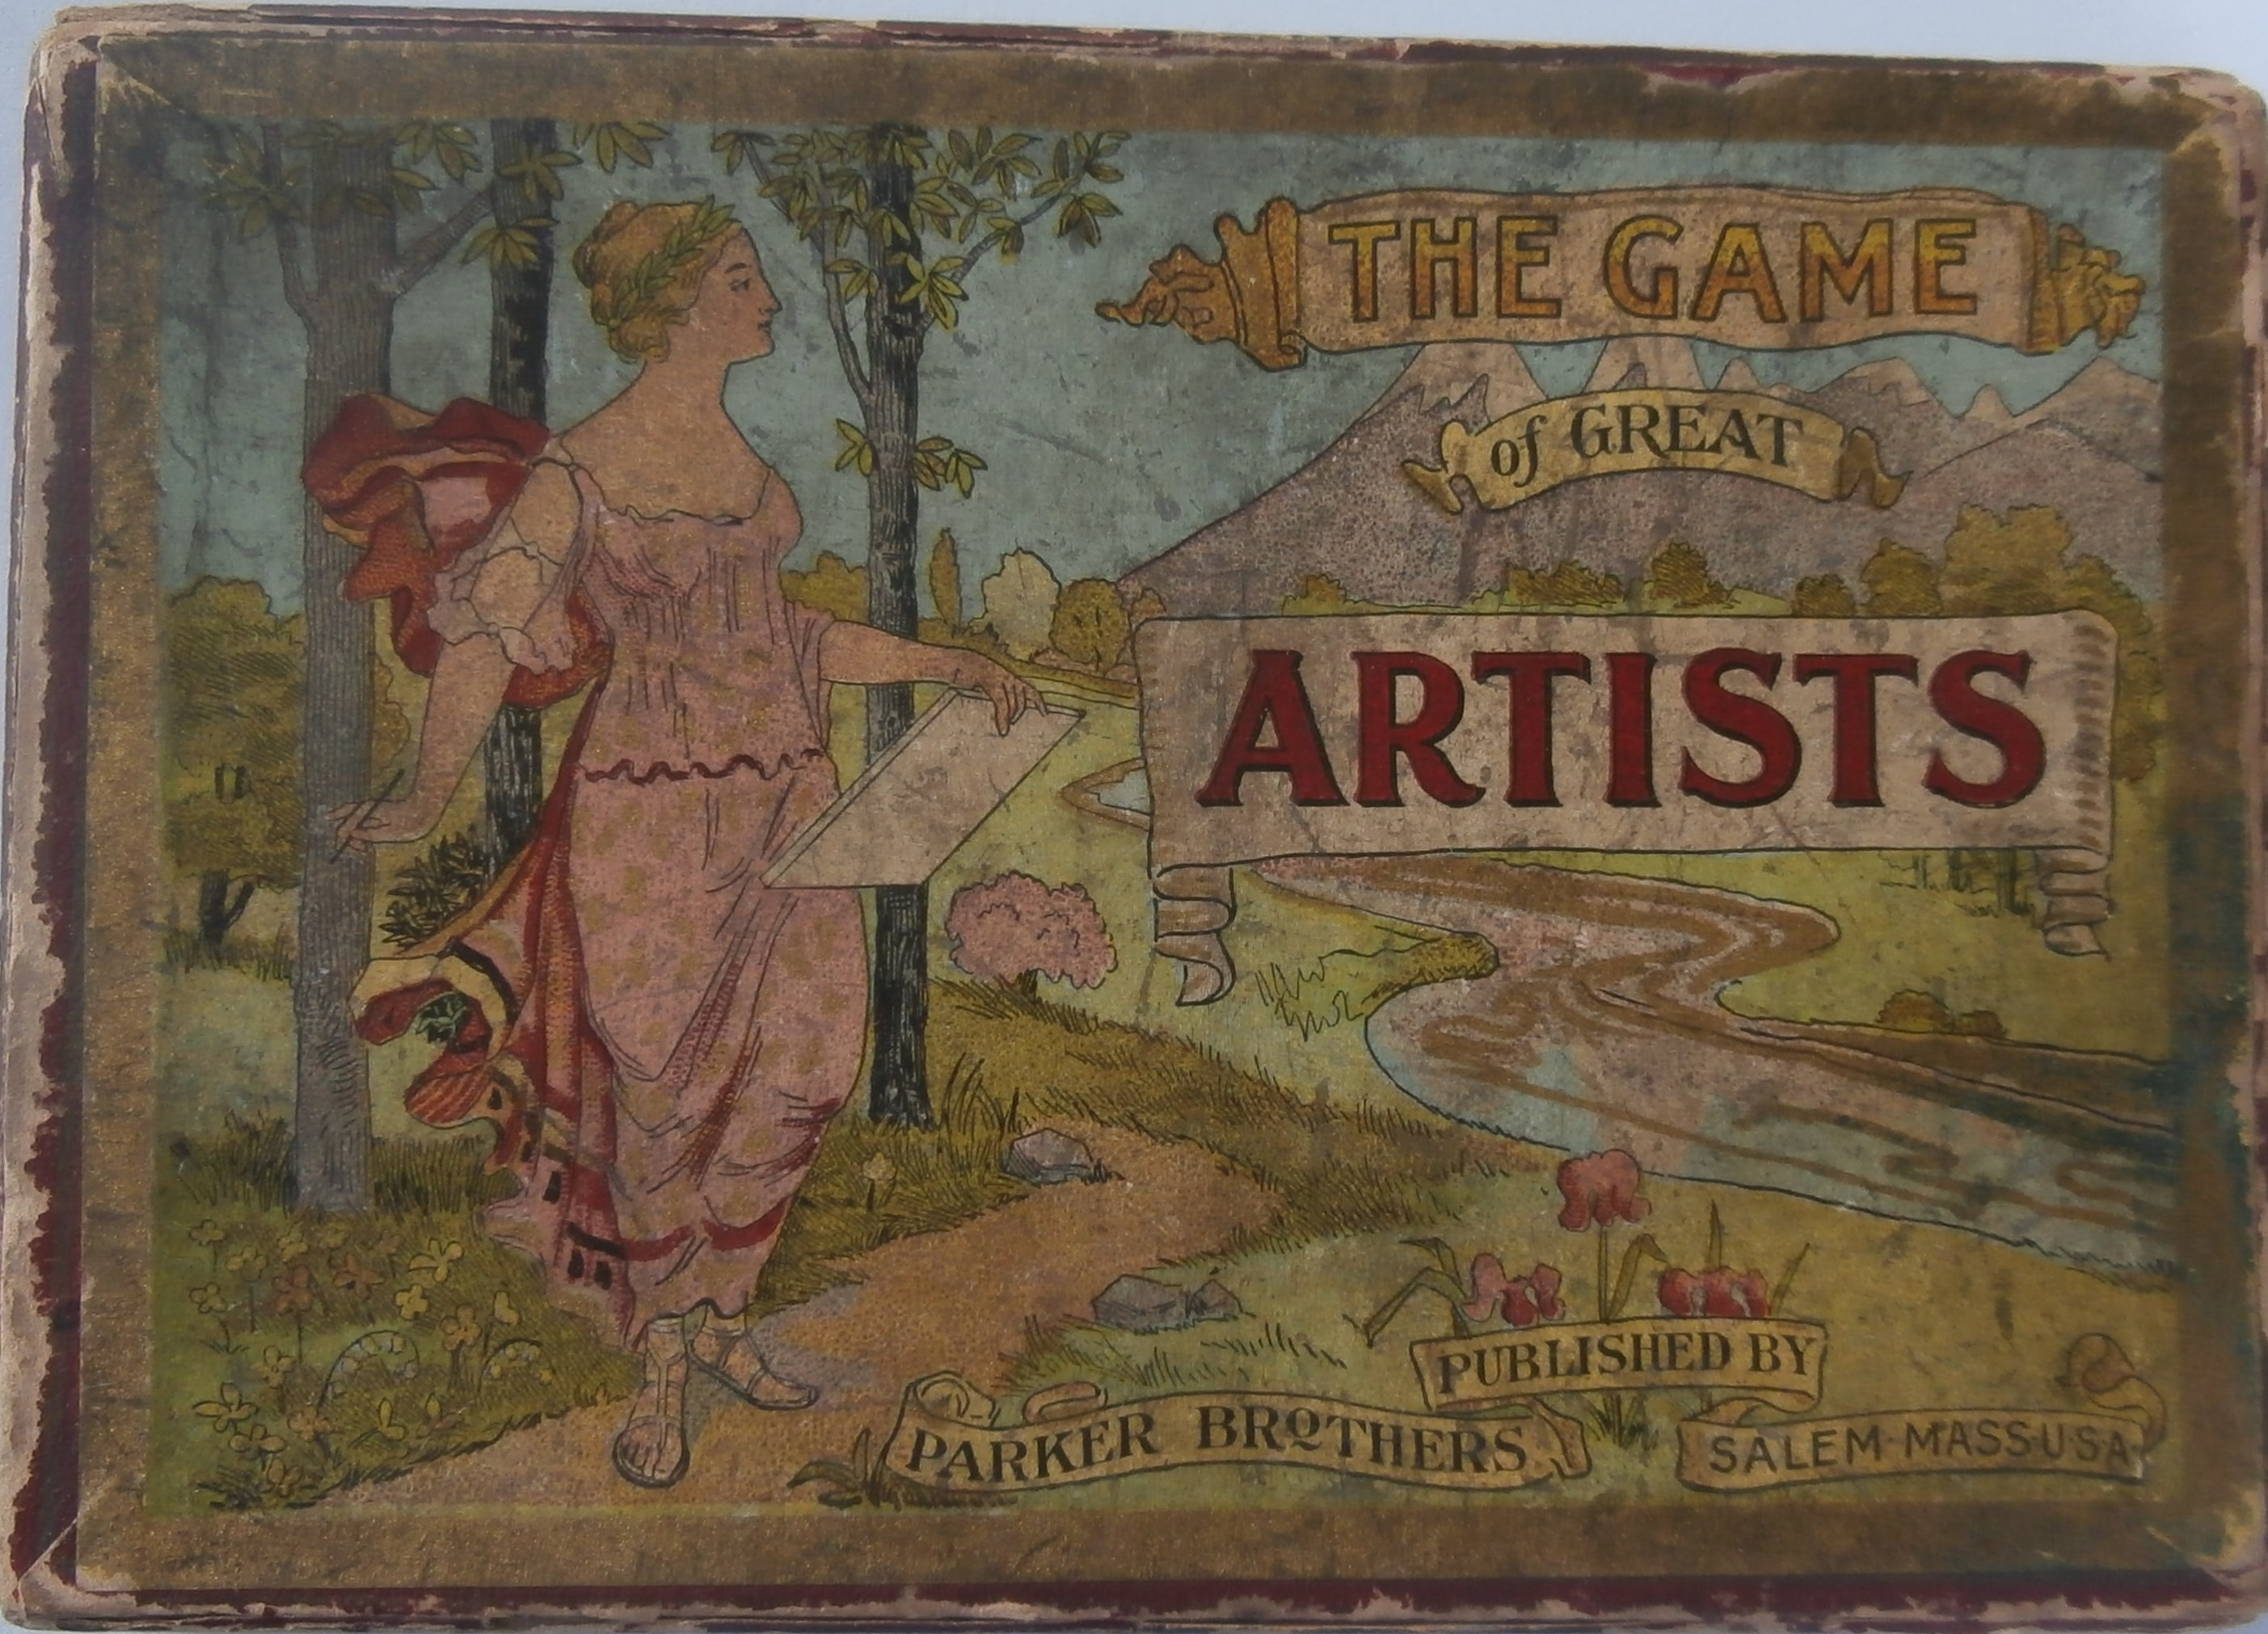 old parker brothers game of Great Artists